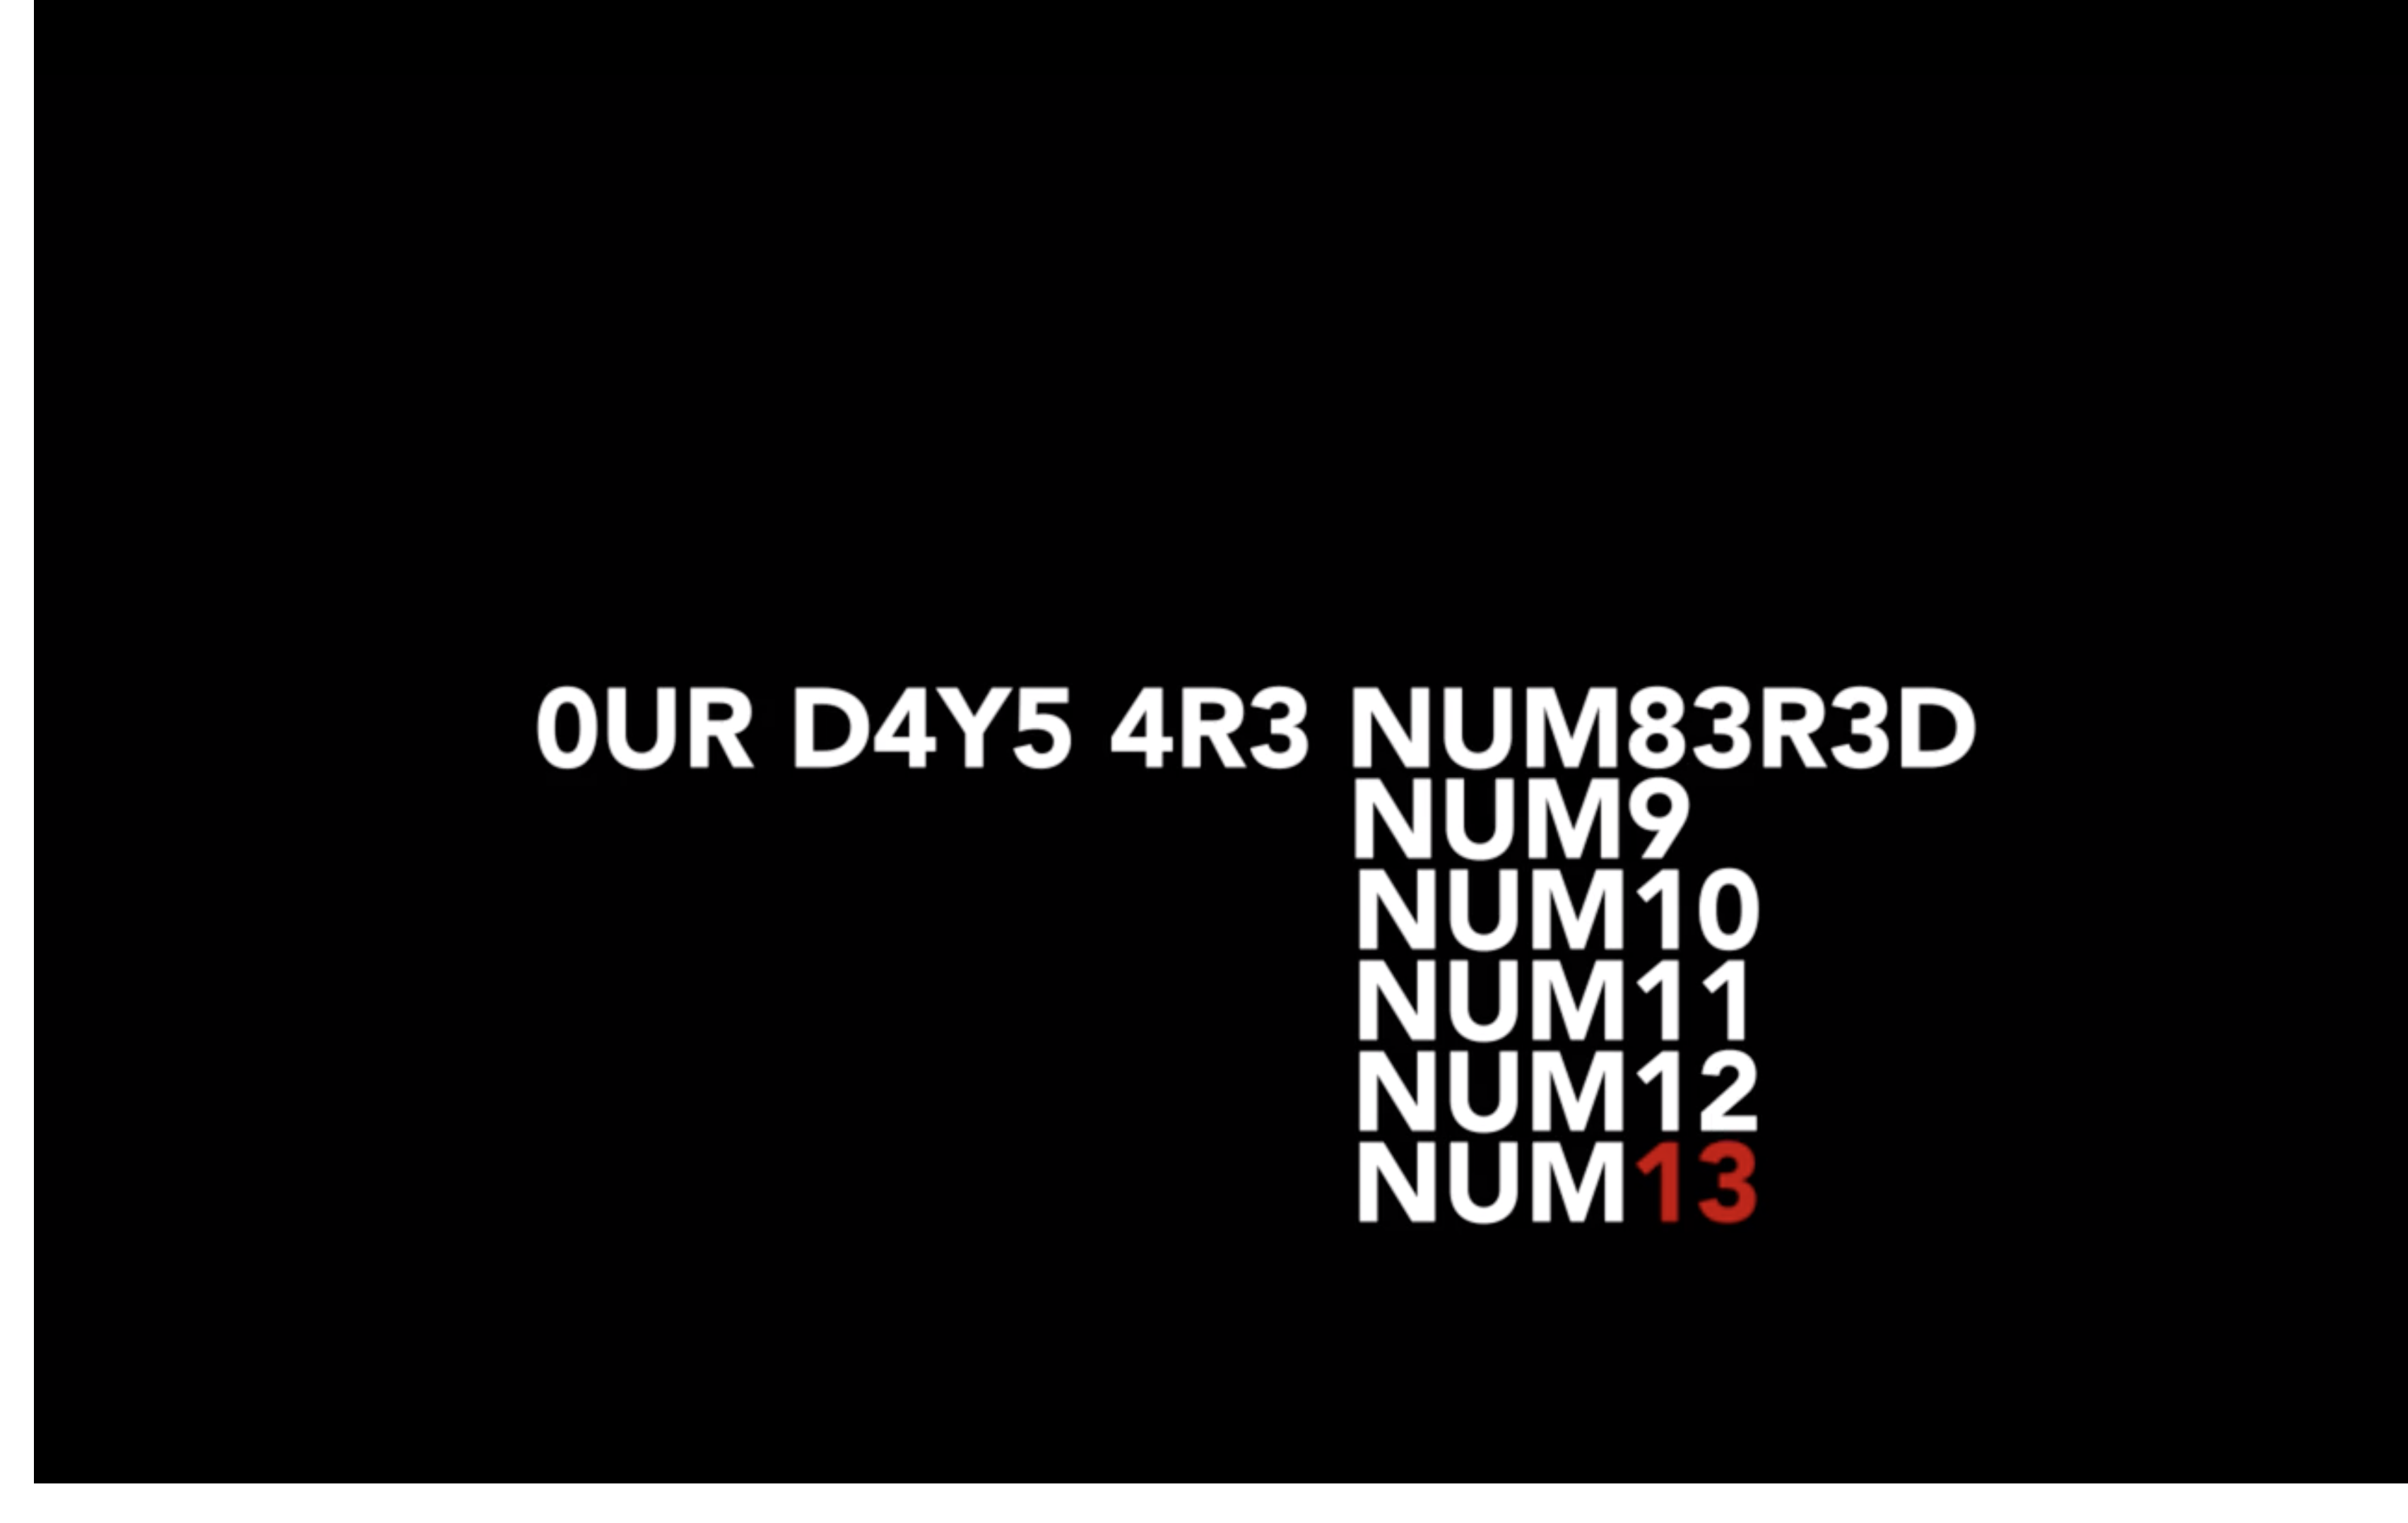 Our days are numbered by Pedro Matos Chaves - Creative Work - $i